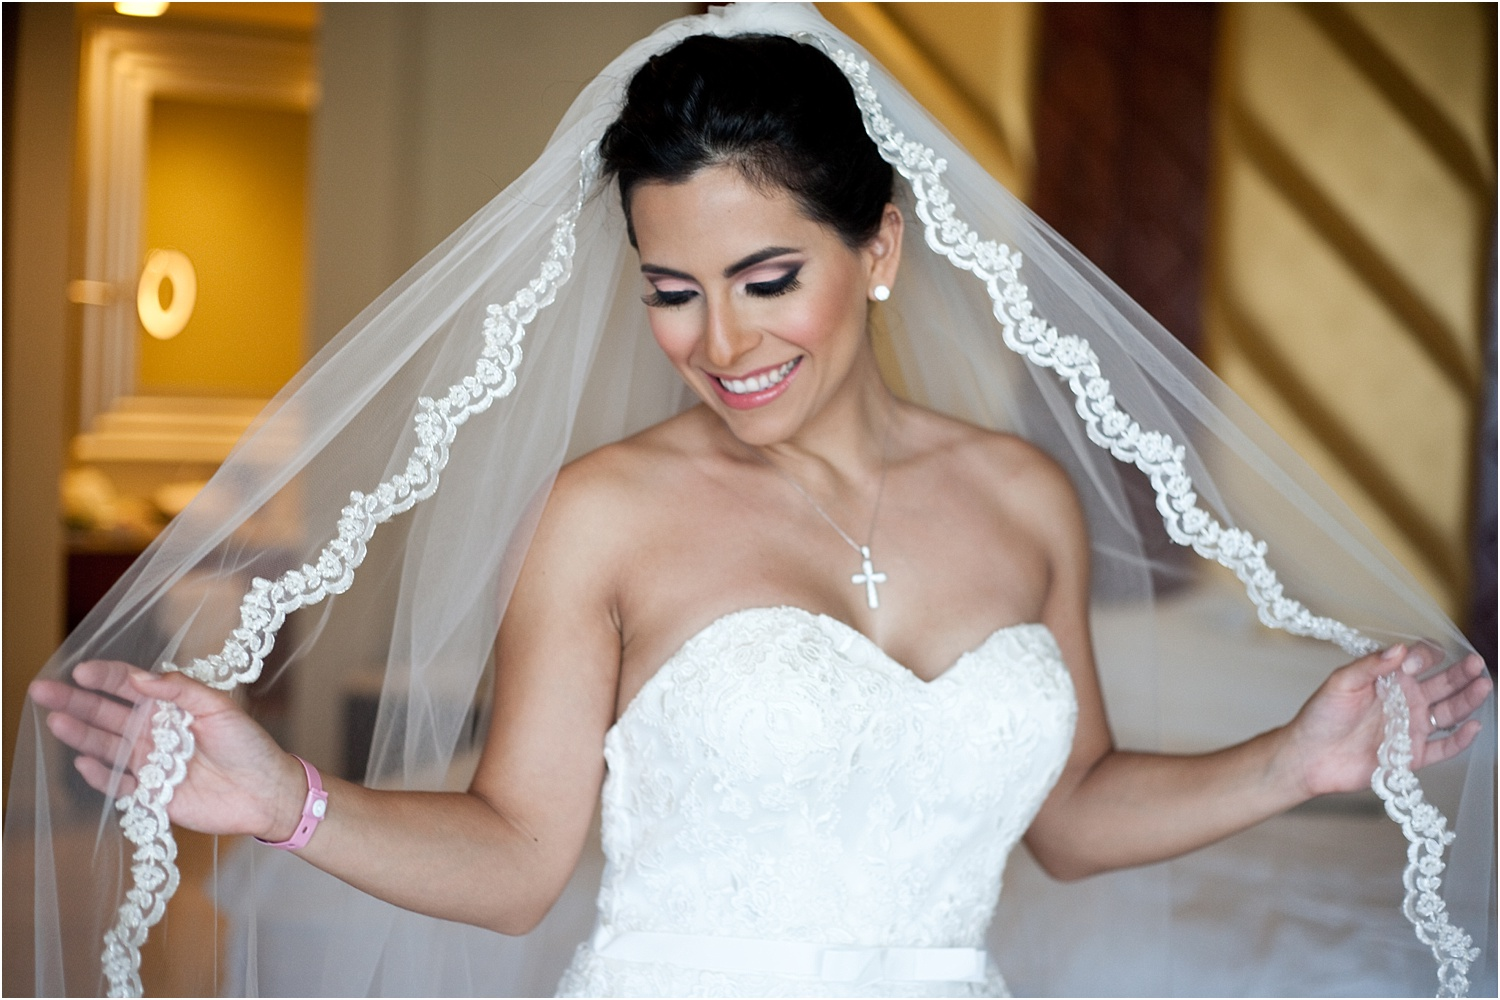 bride holding her veil - Tips for Better Bridal Portraits